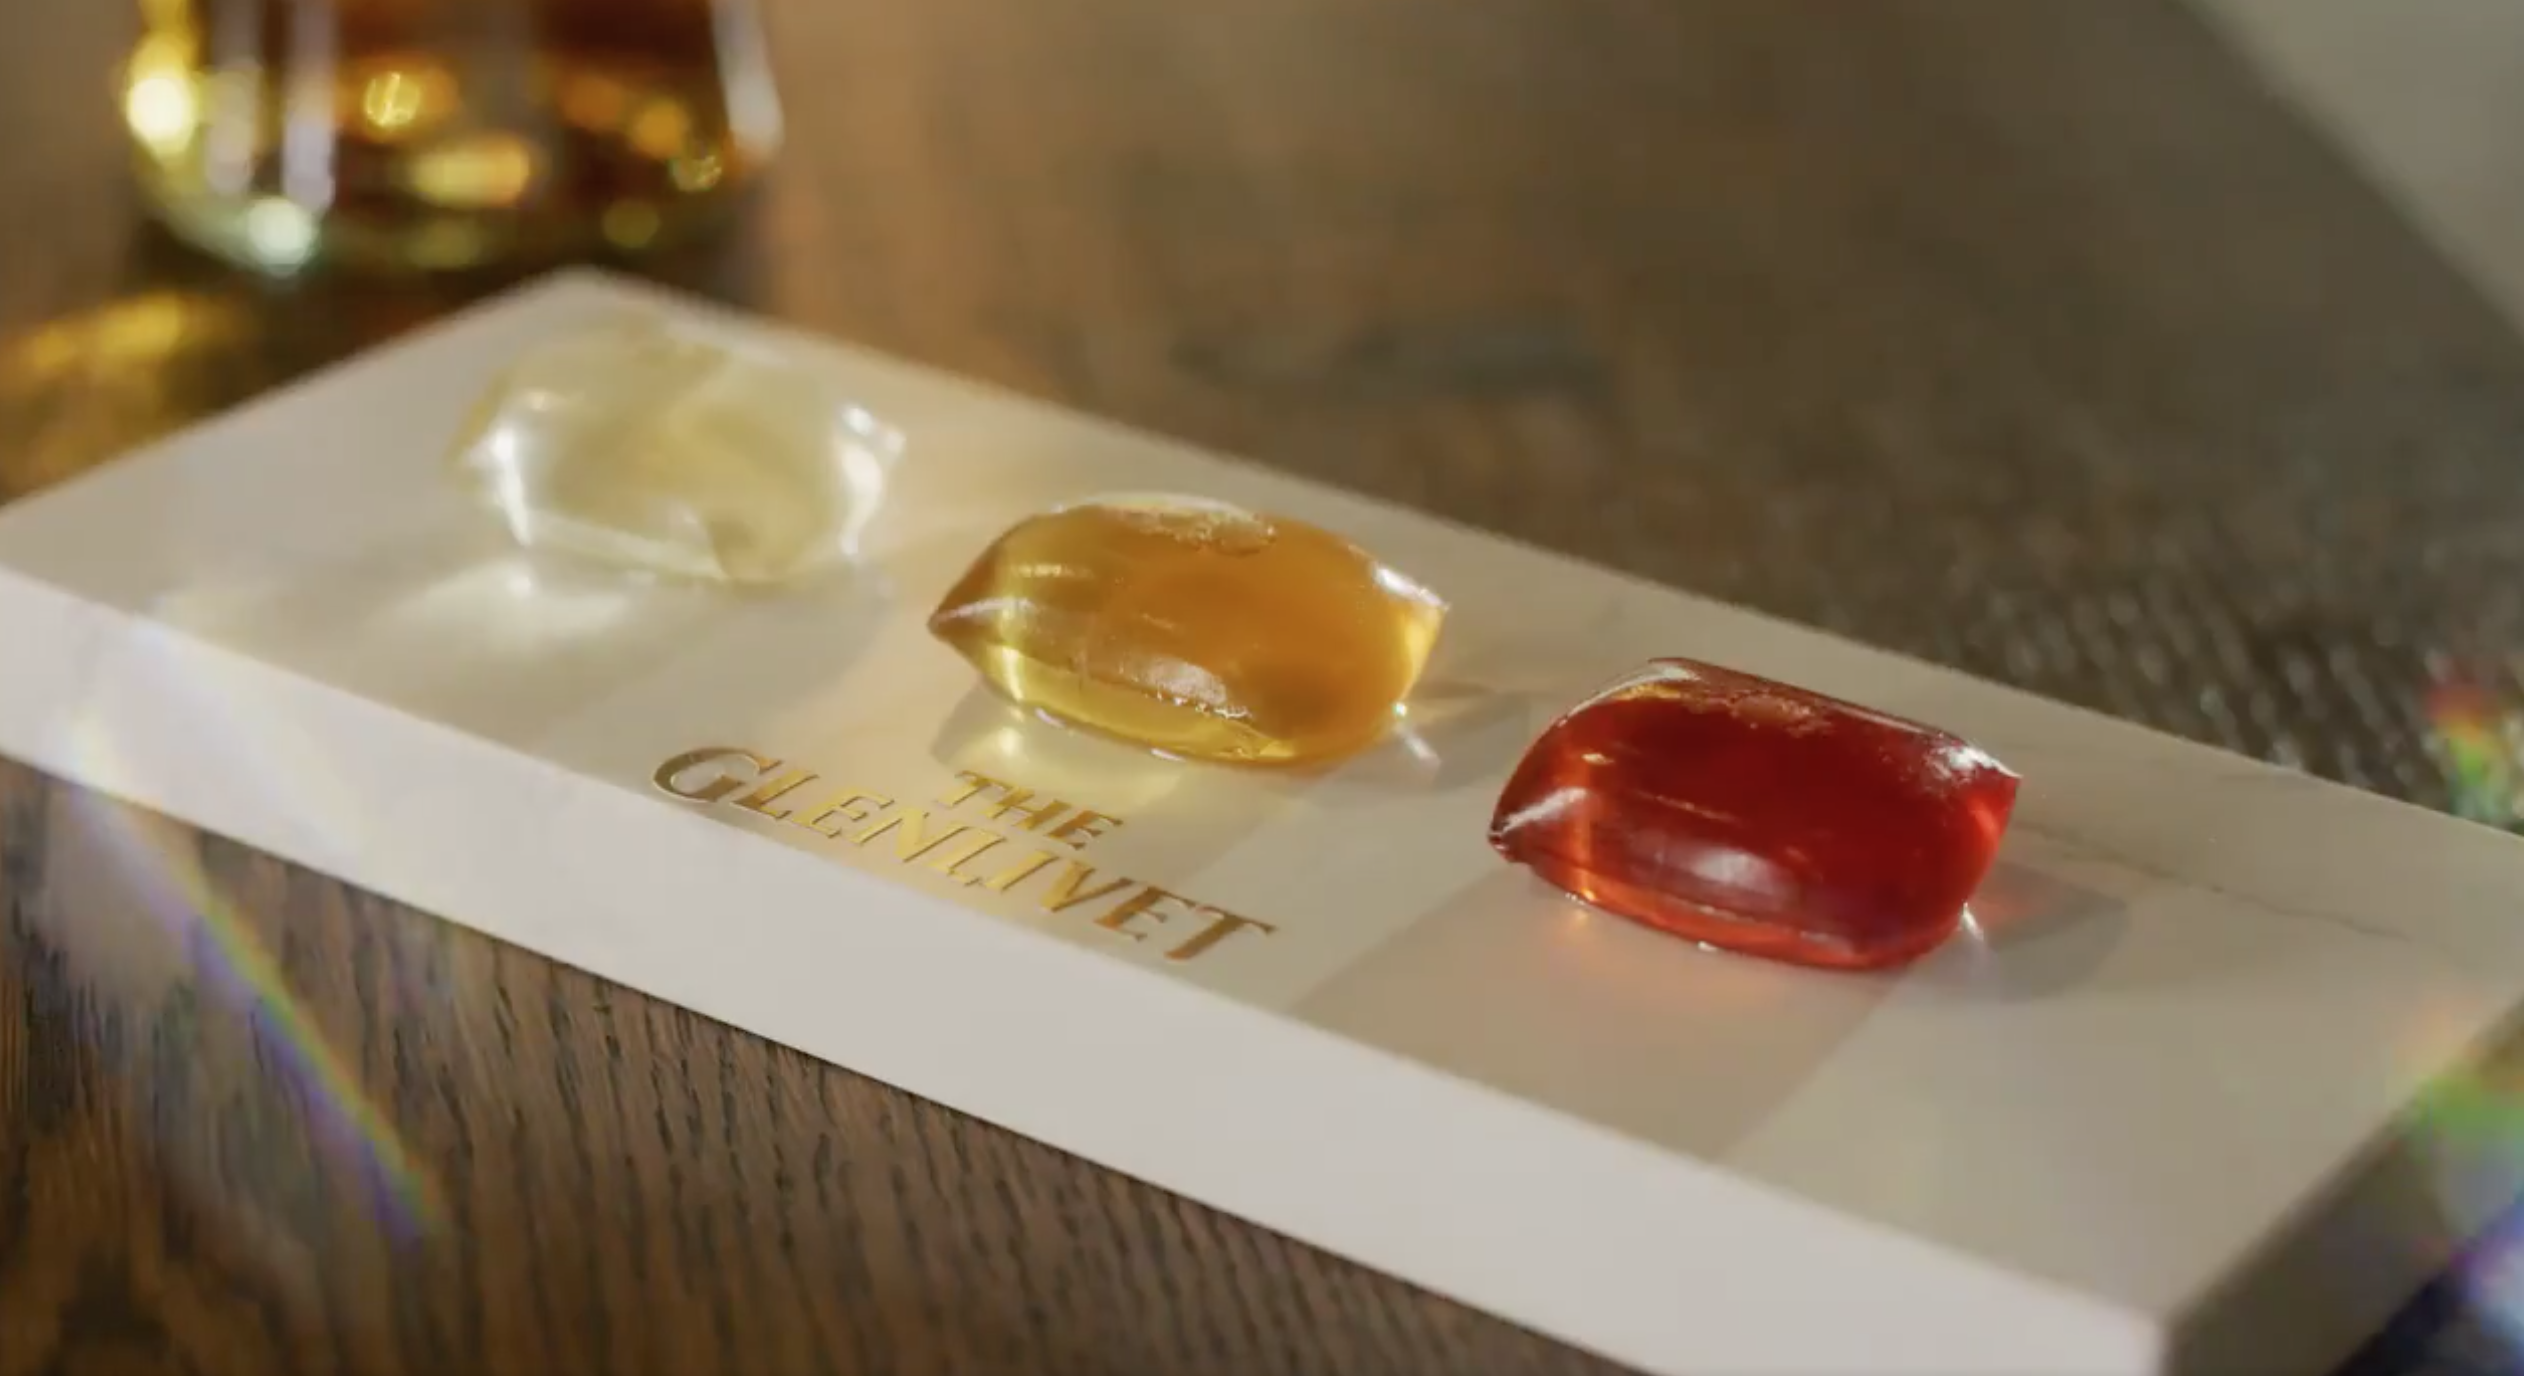 The Glenlivet Scotch Pod Is Essentially Gushers for Grownups